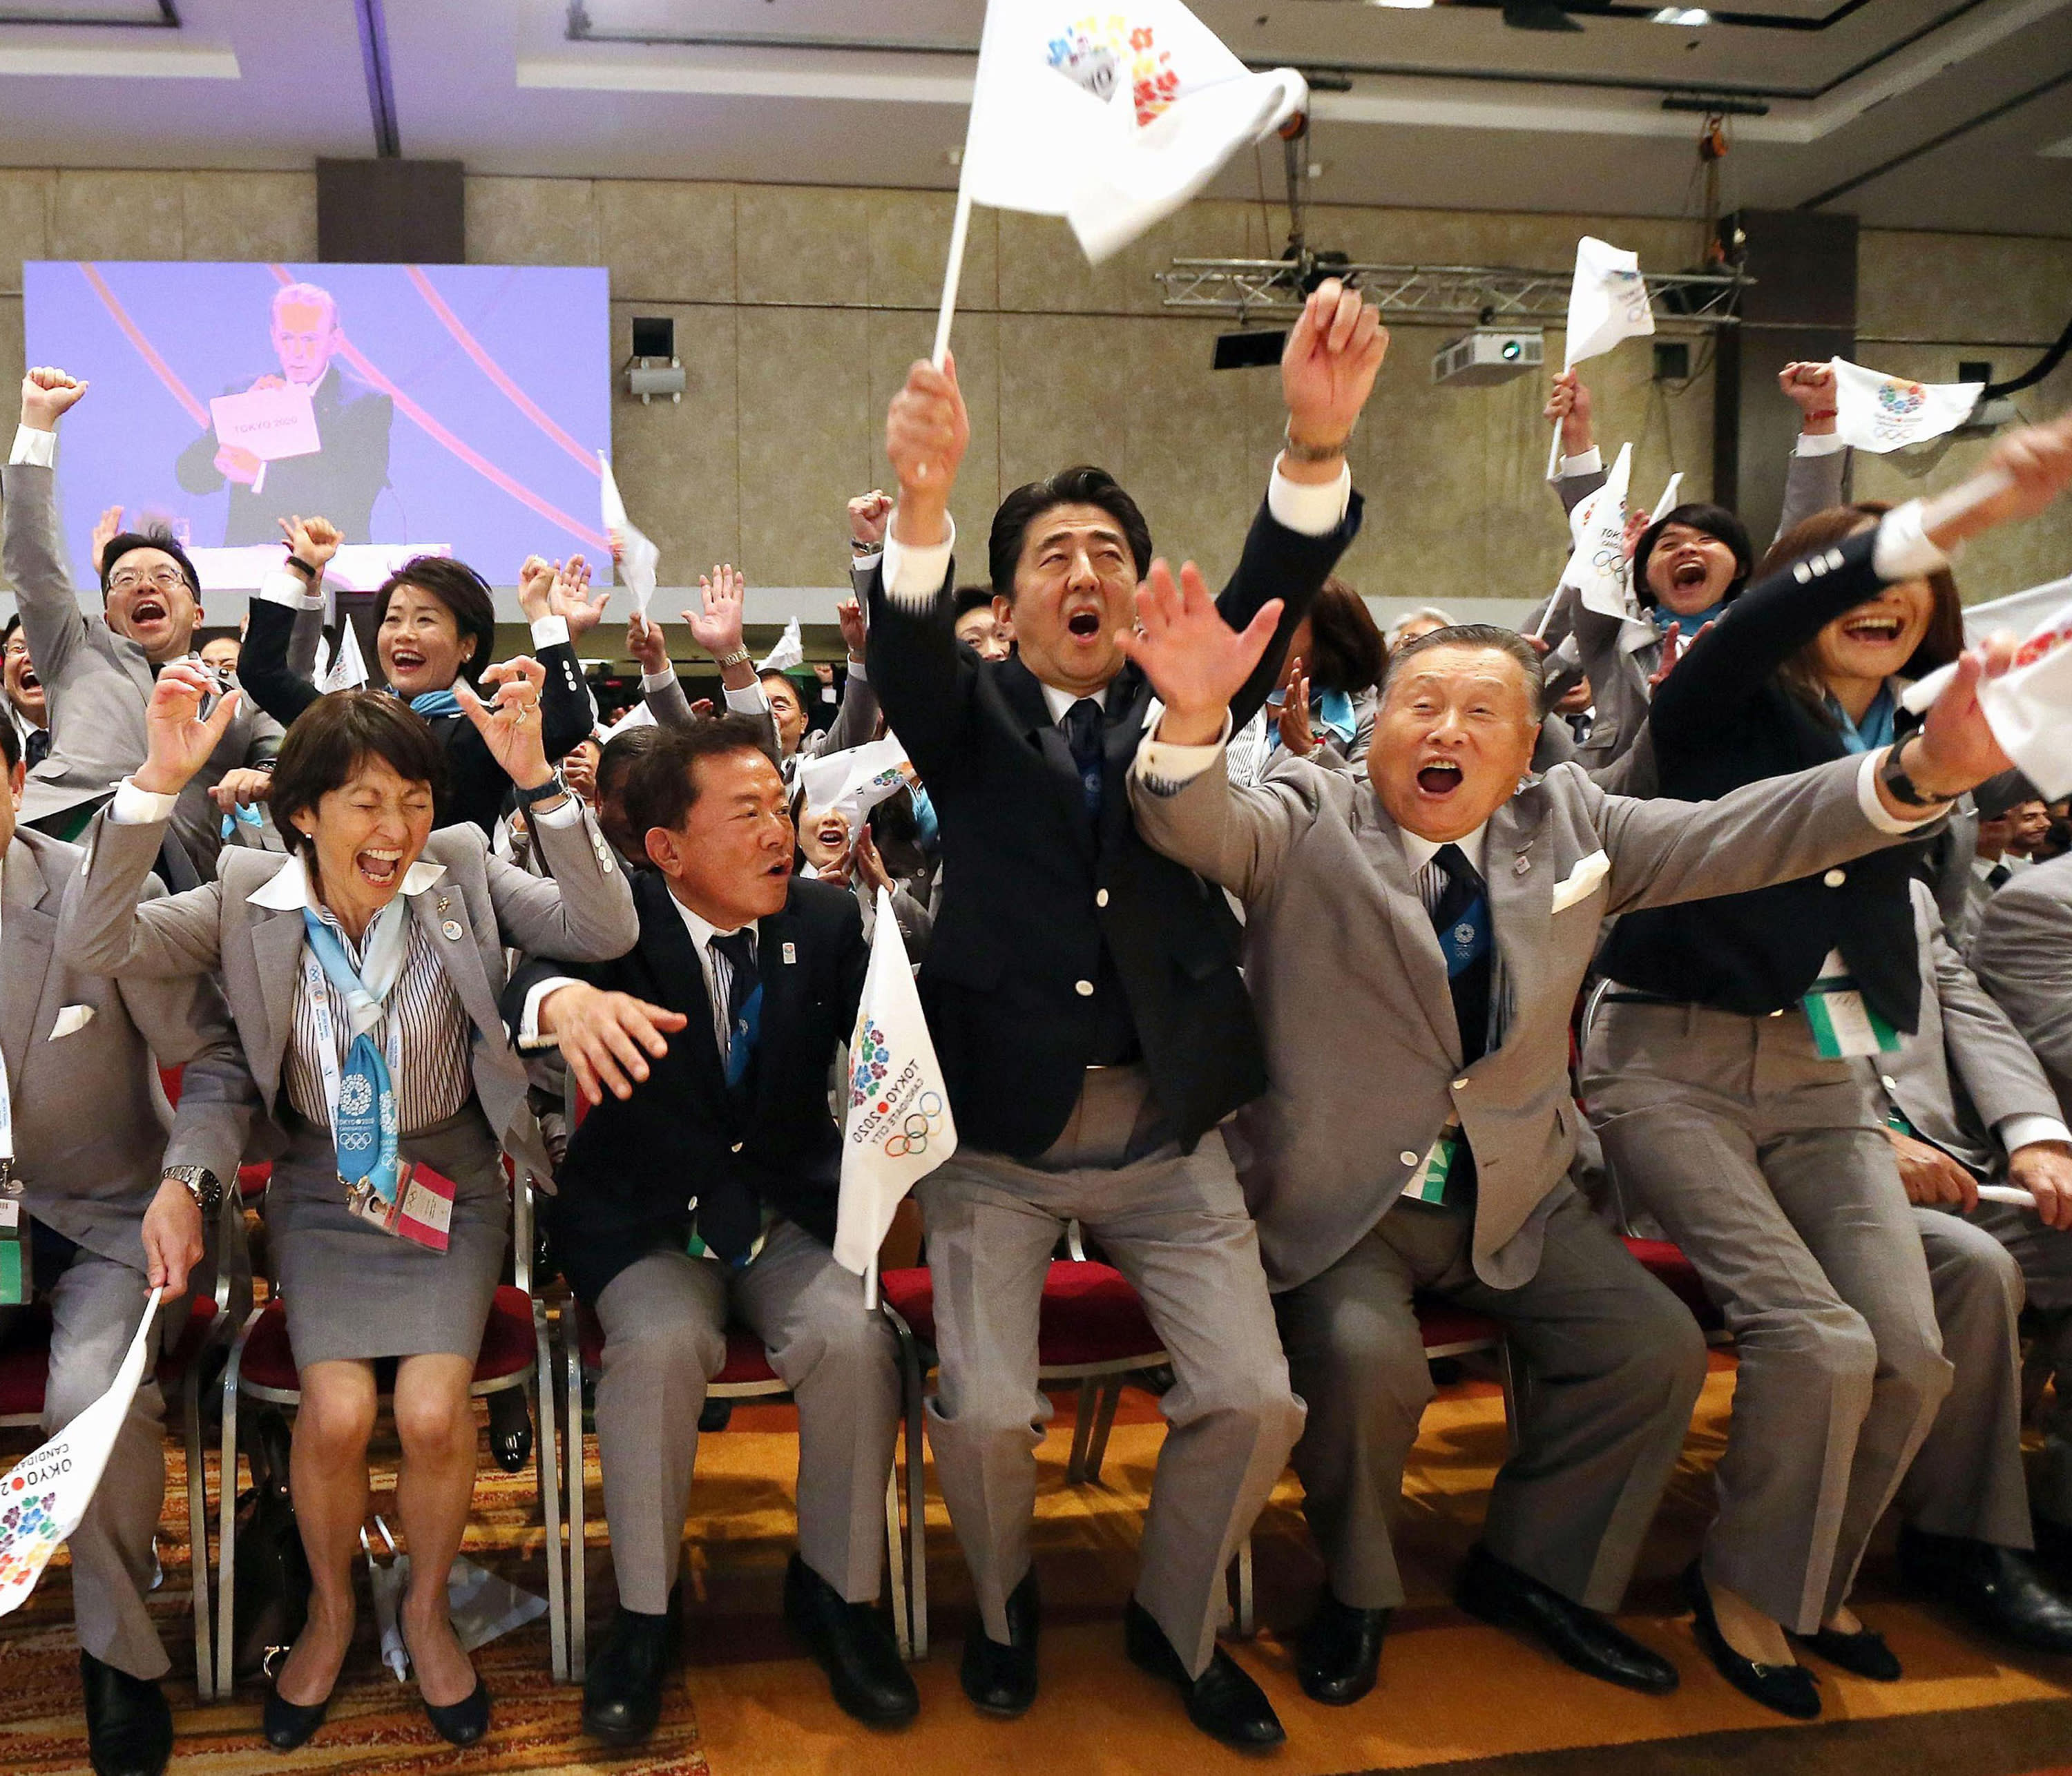 FILE - In this Sept. 7, 2013, file photo, Japanese Prime Minister Shinzo Abe, center, and former prime minister Yoshiro Mori, right, with other delegates, celebrate after Tokyo was awarded the 2020 Summer Olympic Games, in Buenos Aires, Argentine. Abe was in the front row in 2013 in Buenos Aires when IOC President Jacques Rogge opened an envelop to show Tokyo was the 2020 host, beating out Istanbul. (Kyodo News via AP, File)